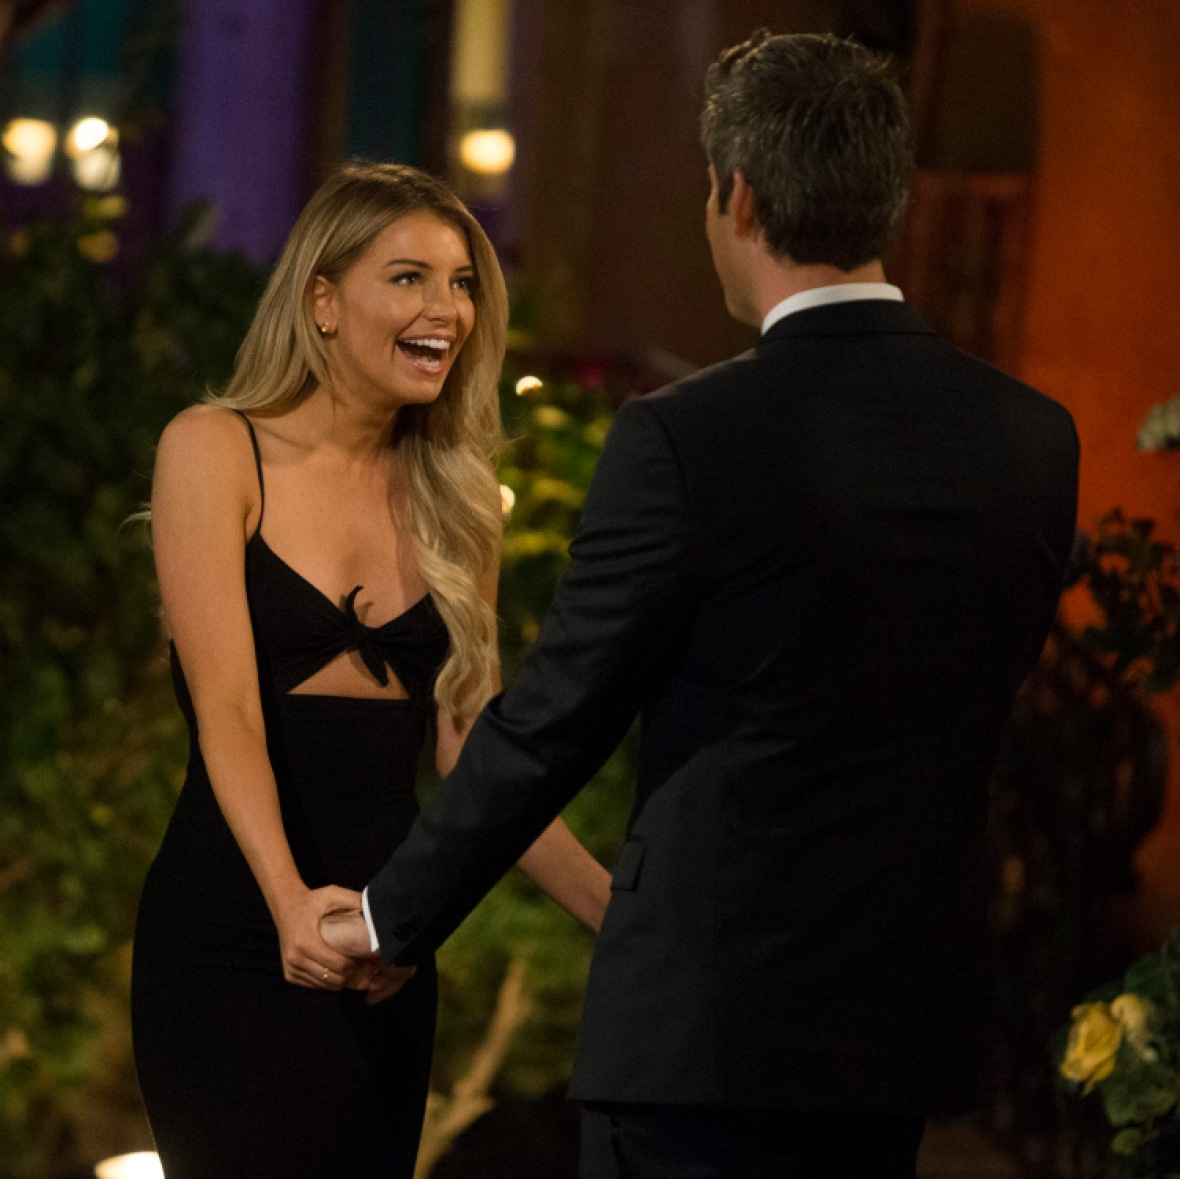 lauren s. the bachelor getty images